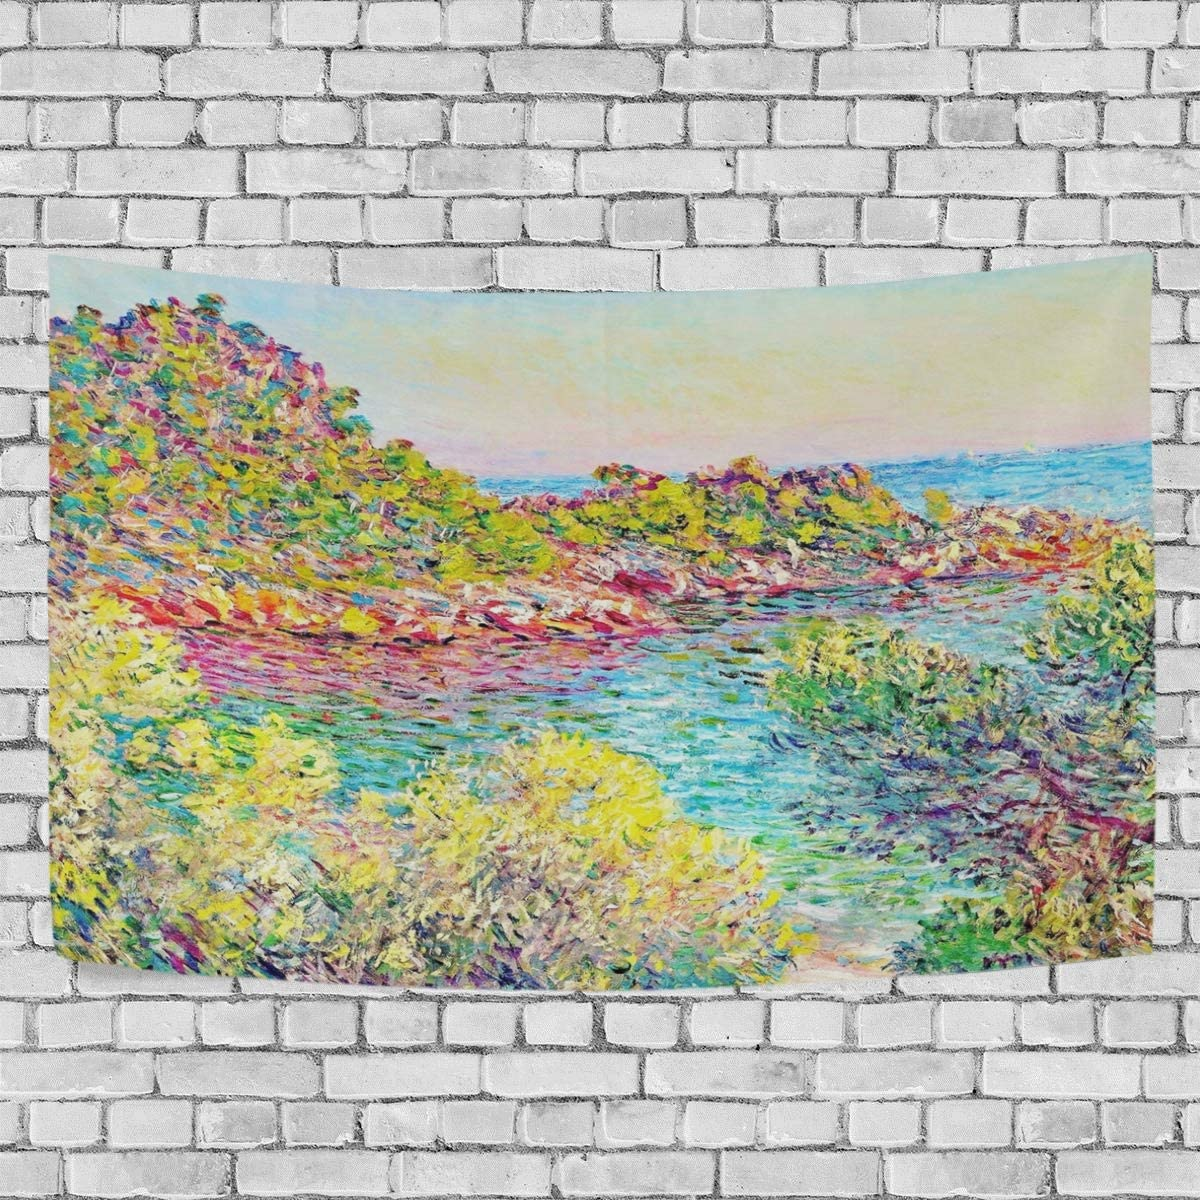 Nugier Claude Monet Near Montecarlo 90 X60 DIY Tapestry Wall Hanging for Home Living Room Bedroom